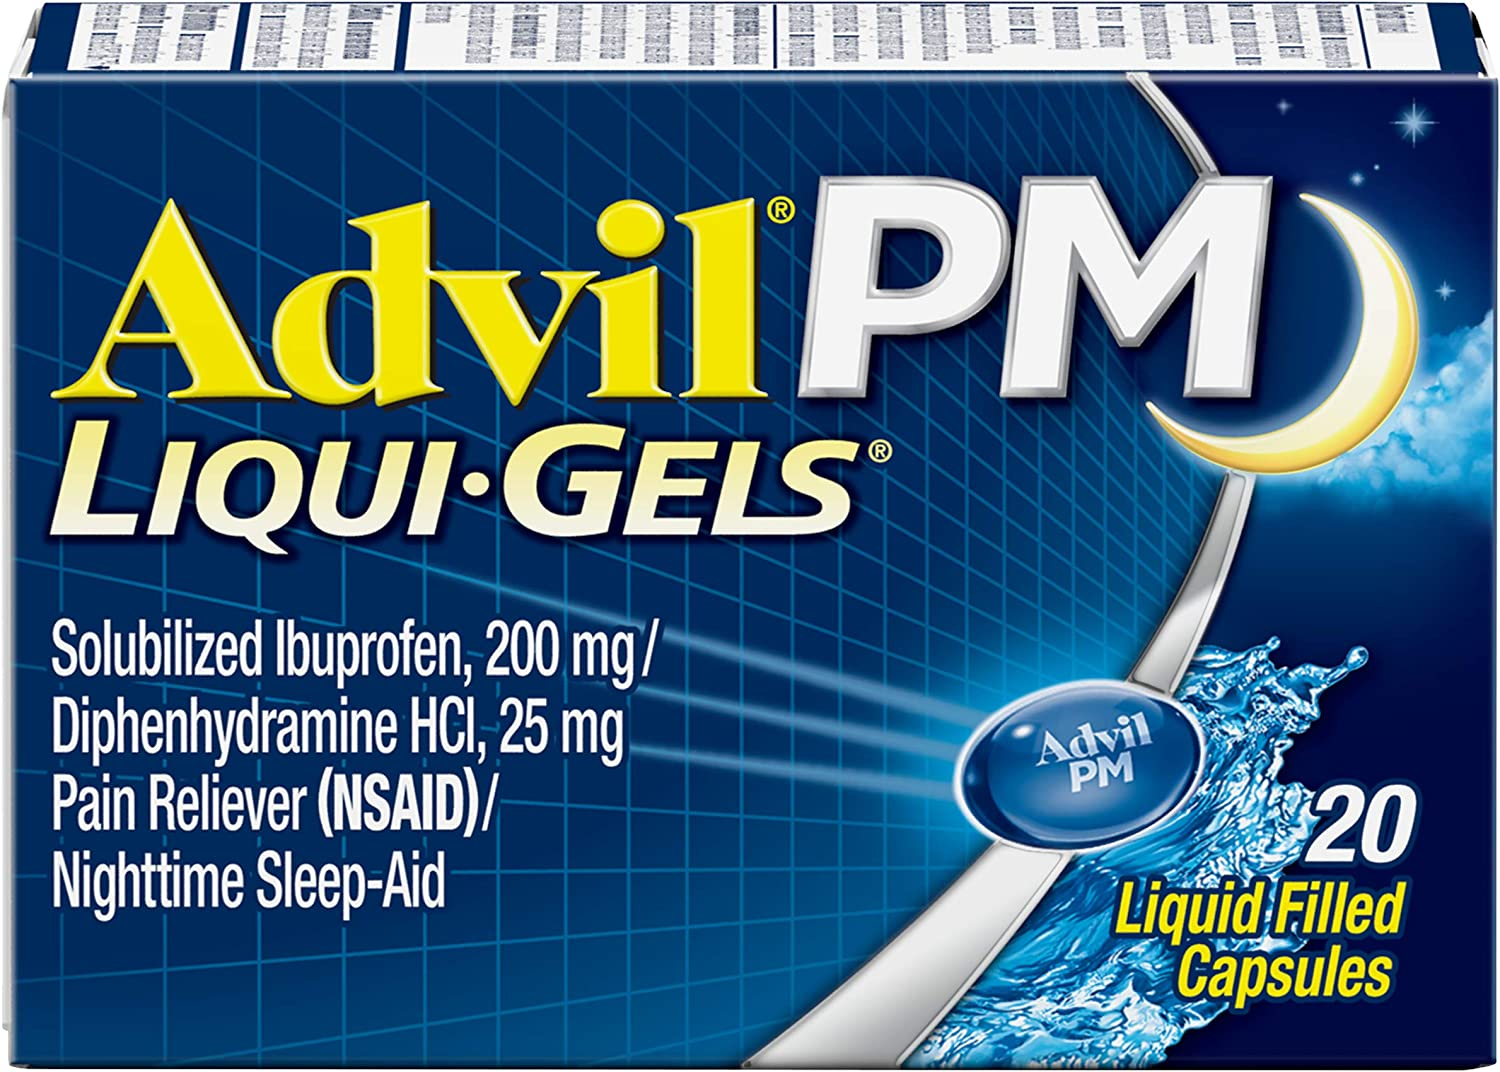 Amazon Com Advil Pm Liqui Gels Pain Reliever And Nighttime Sleep Aid Pain Medicine With Ibuprofen For Pain Relief And Diphenhydramine Hcl For A Sleep Aid 20 Liquid Filled Capsules Health